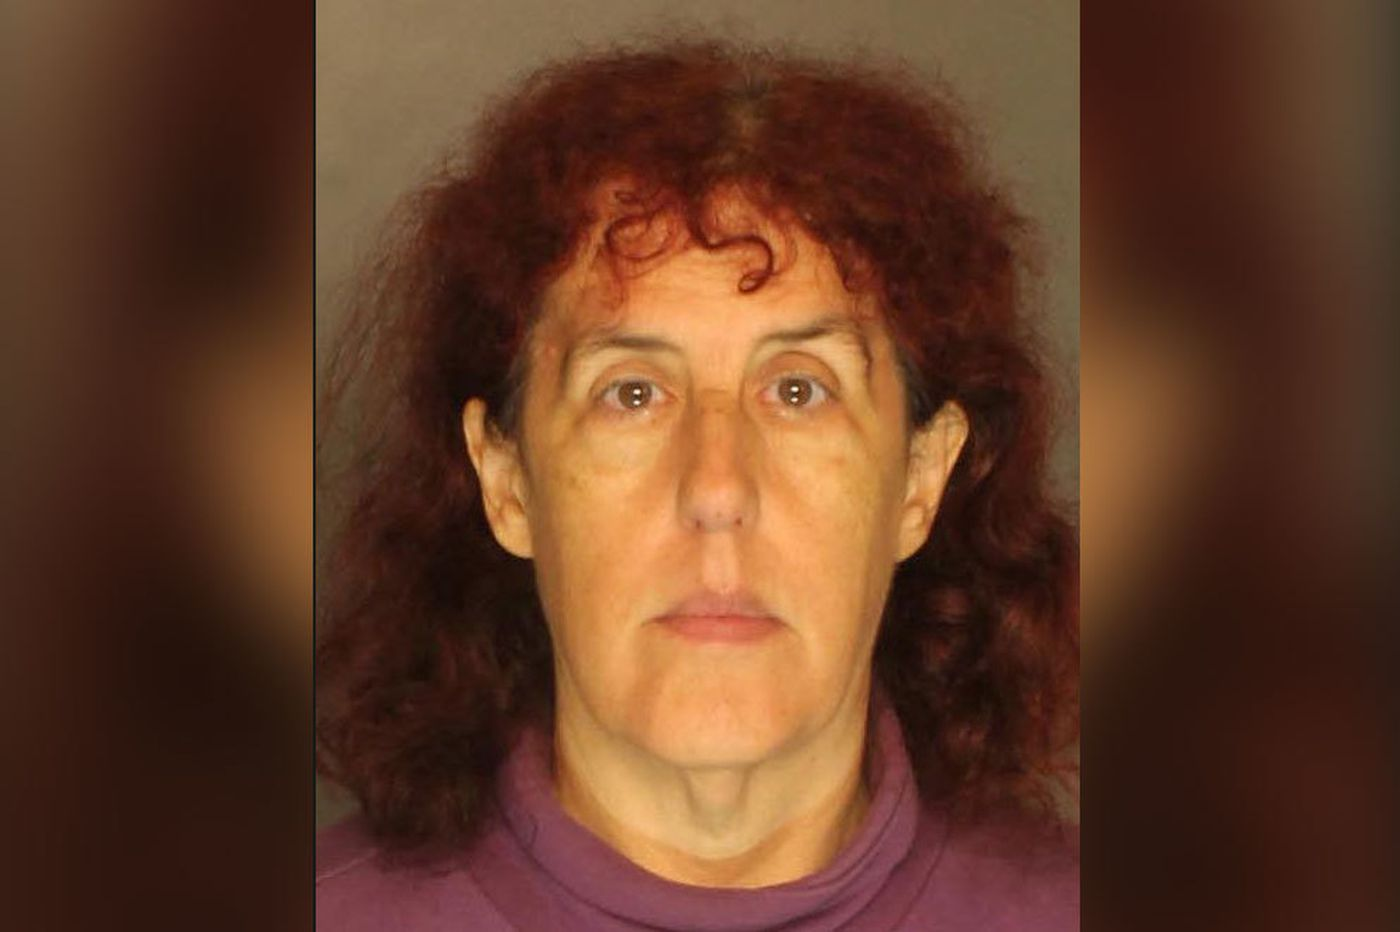 Woman hid her Ardmore grandmother's body in a freezer for 15 years to steal her Social Security checks, police say